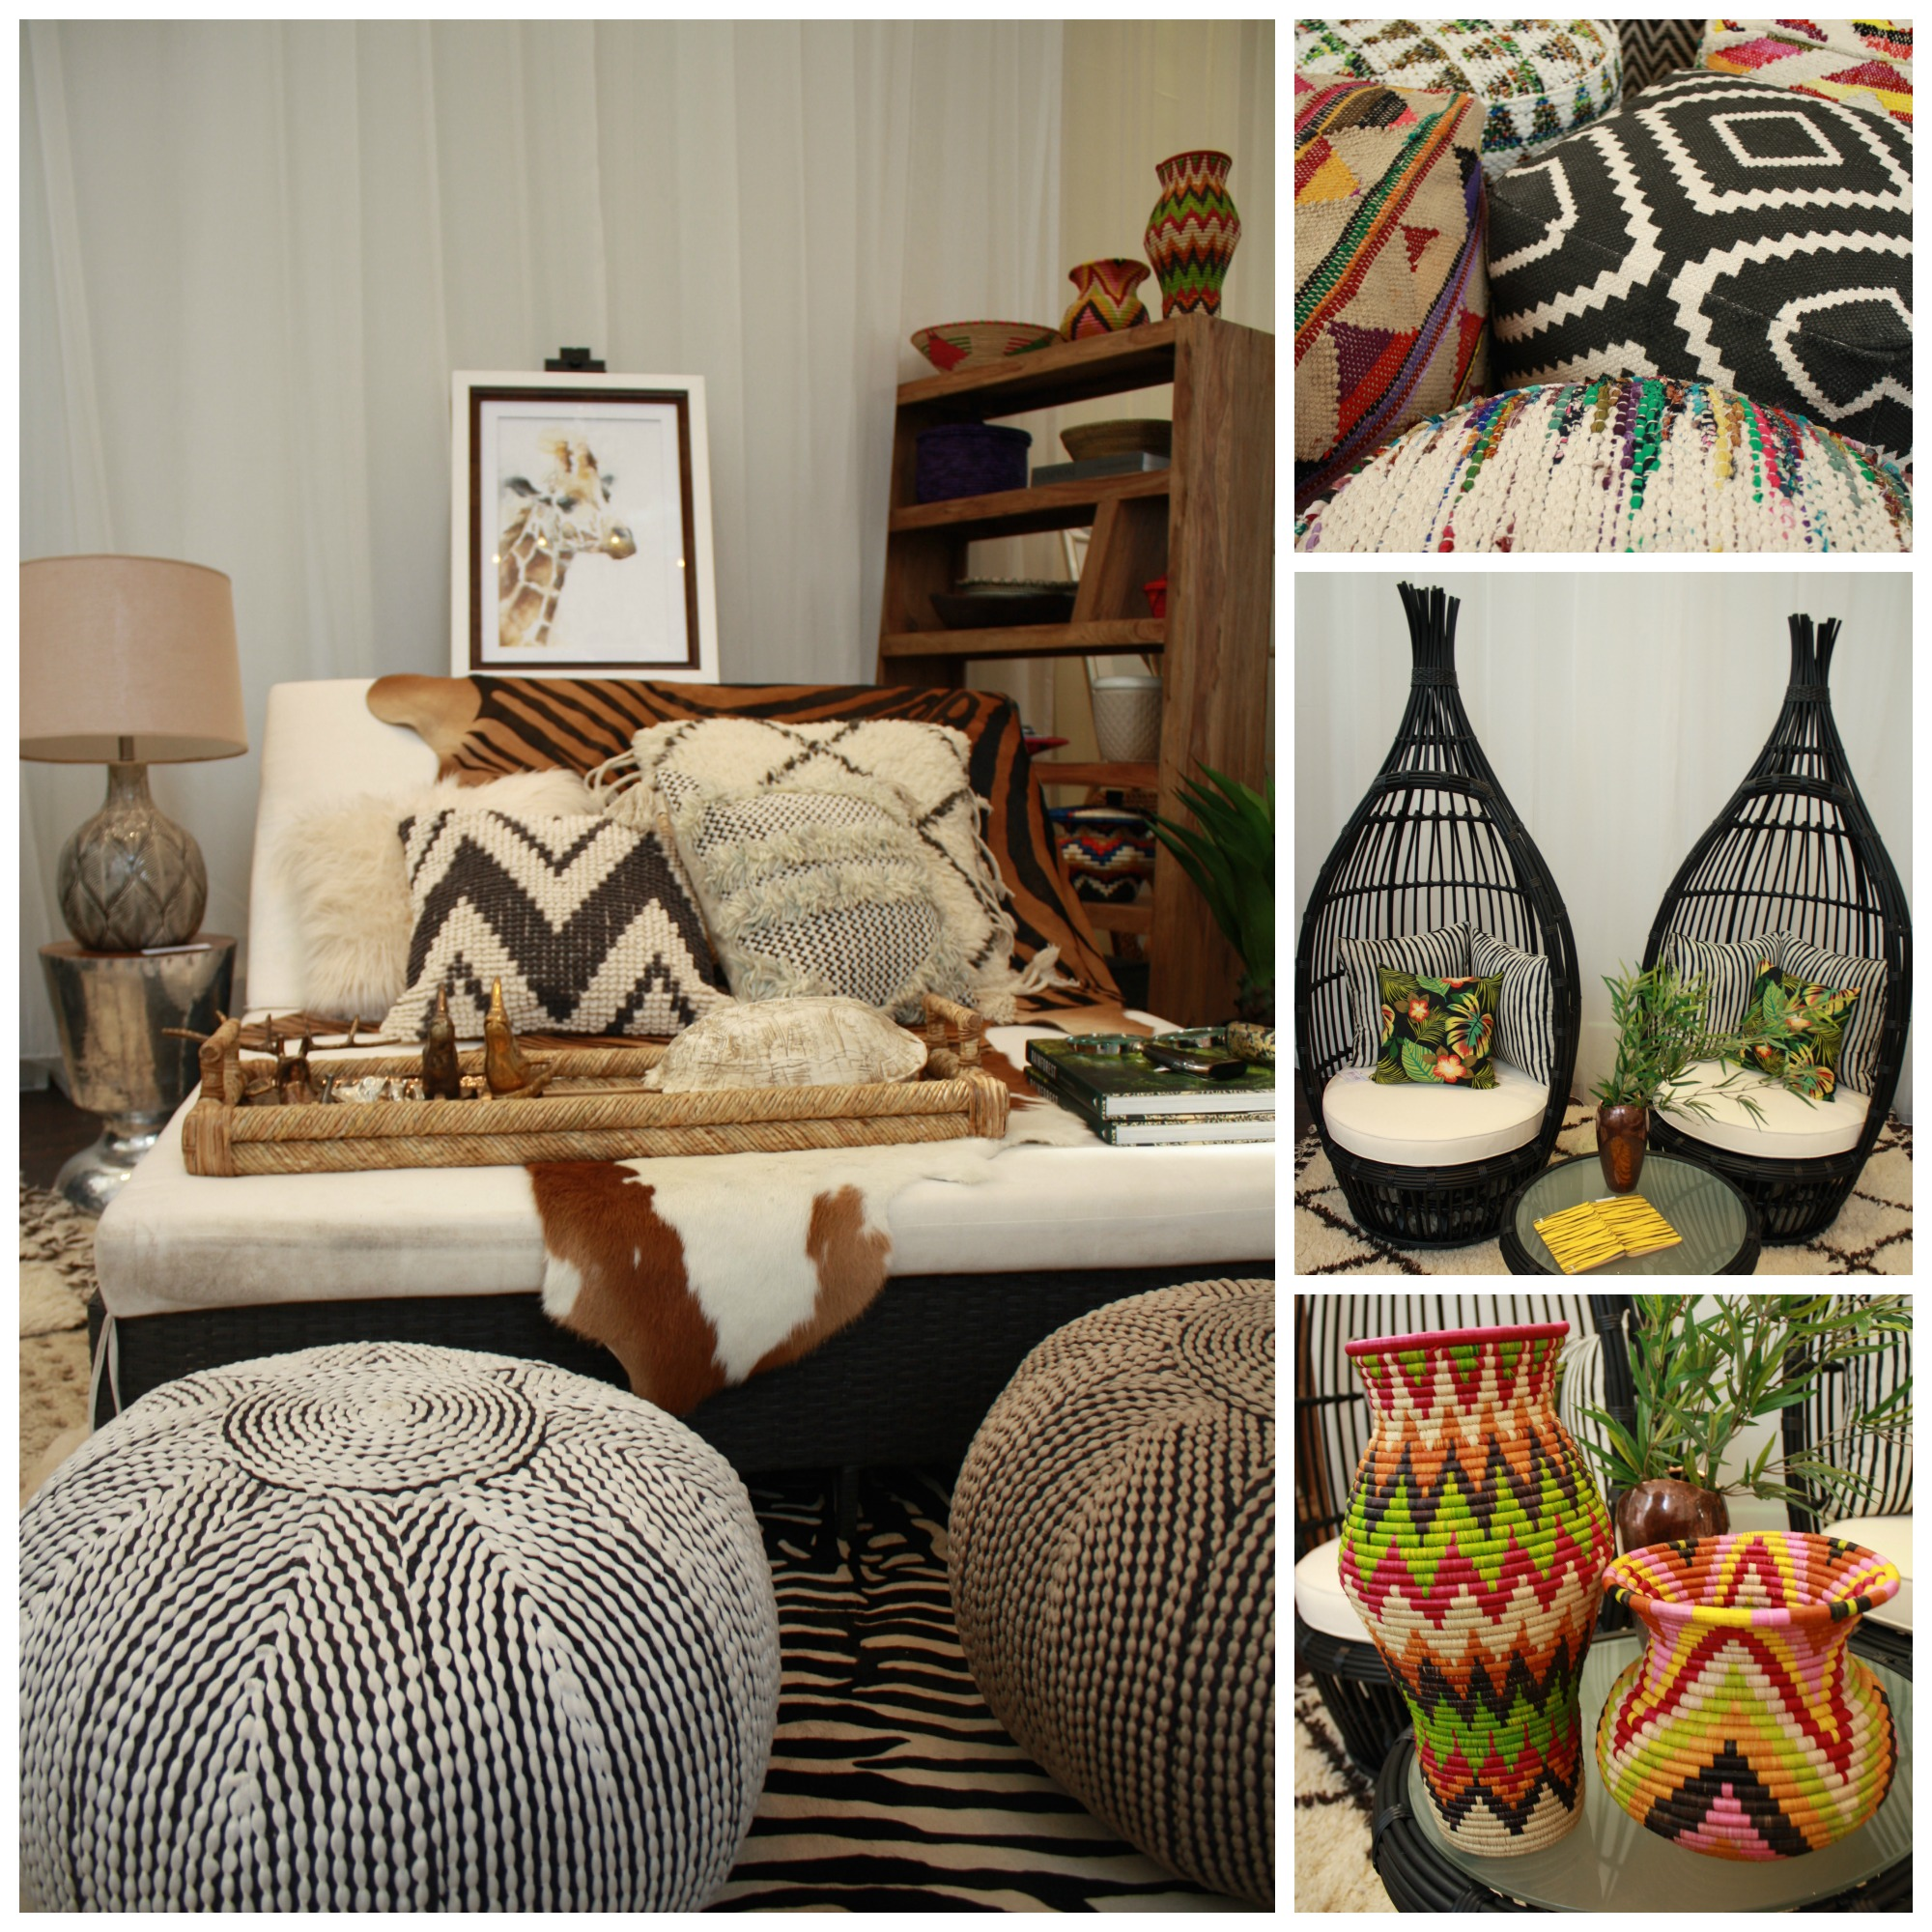 homesense-jungle Collage